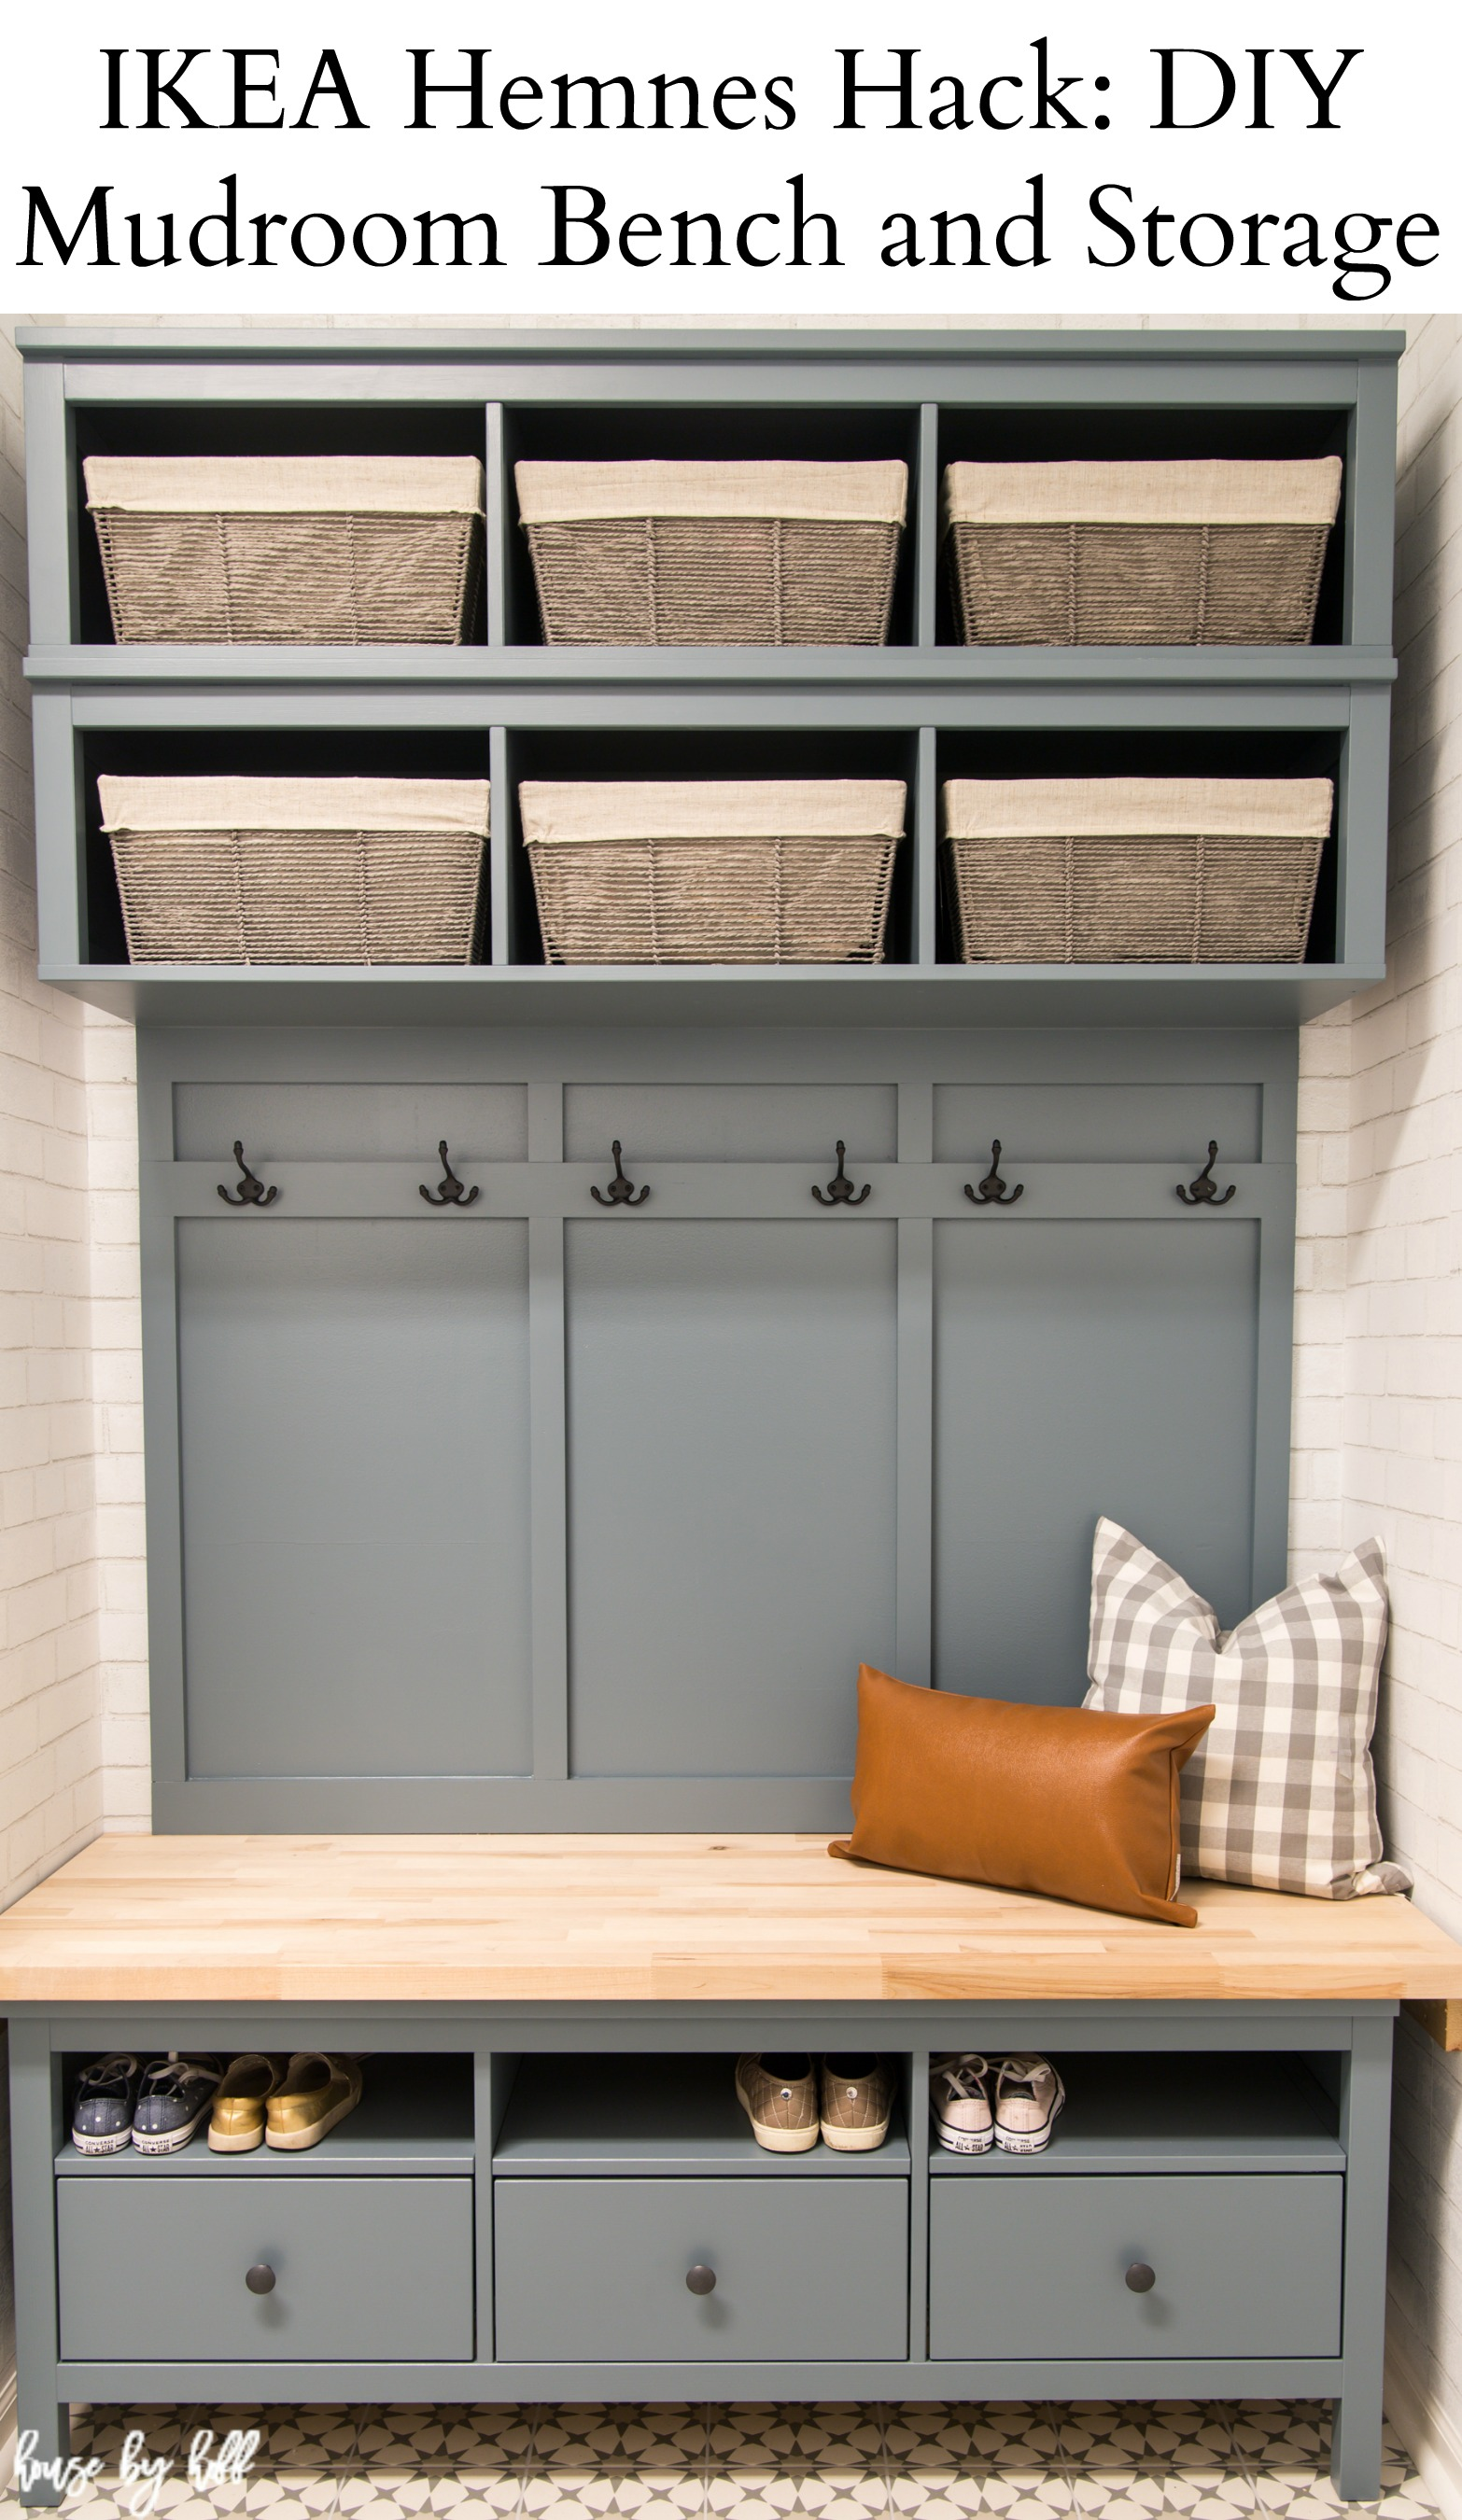 Tremendous Ikea Hemnes Hack Diy Mudroom Bench And Storage House By Hoff Cjindustries Chair Design For Home Cjindustriesco